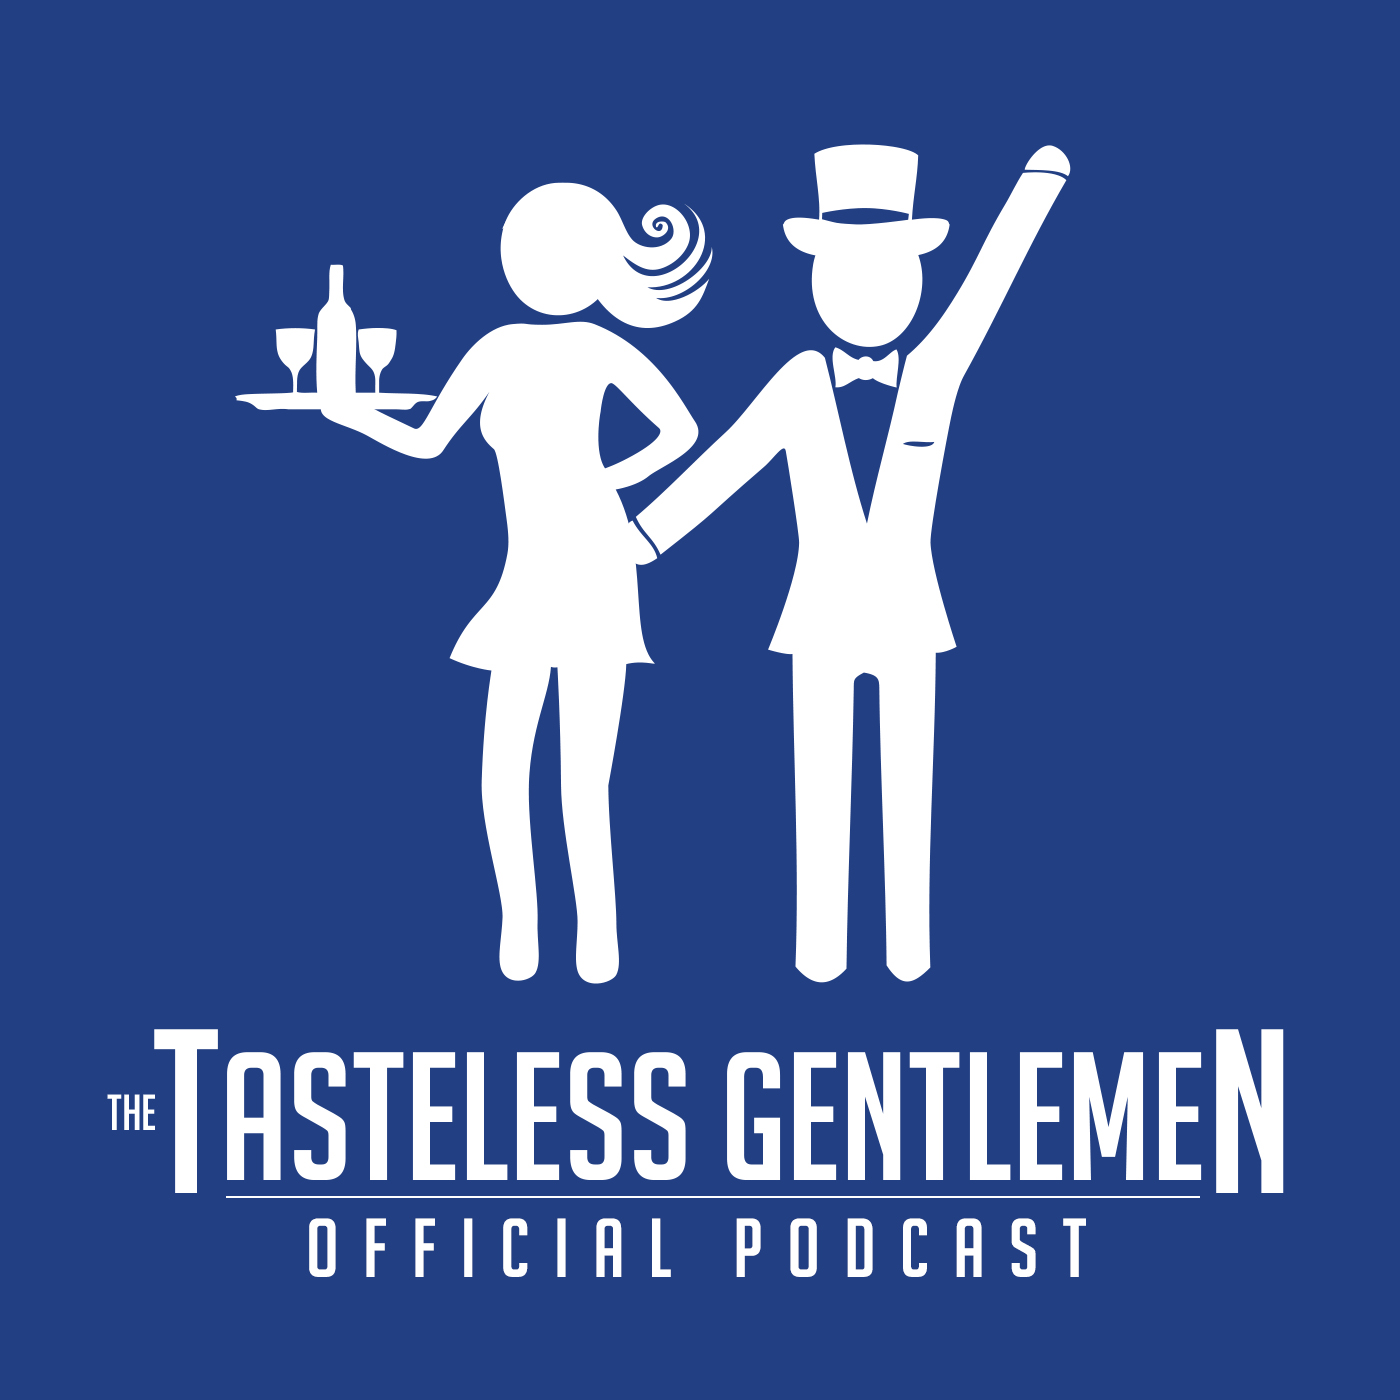 The Tasteless Gentlemen Podcast. Episode 32